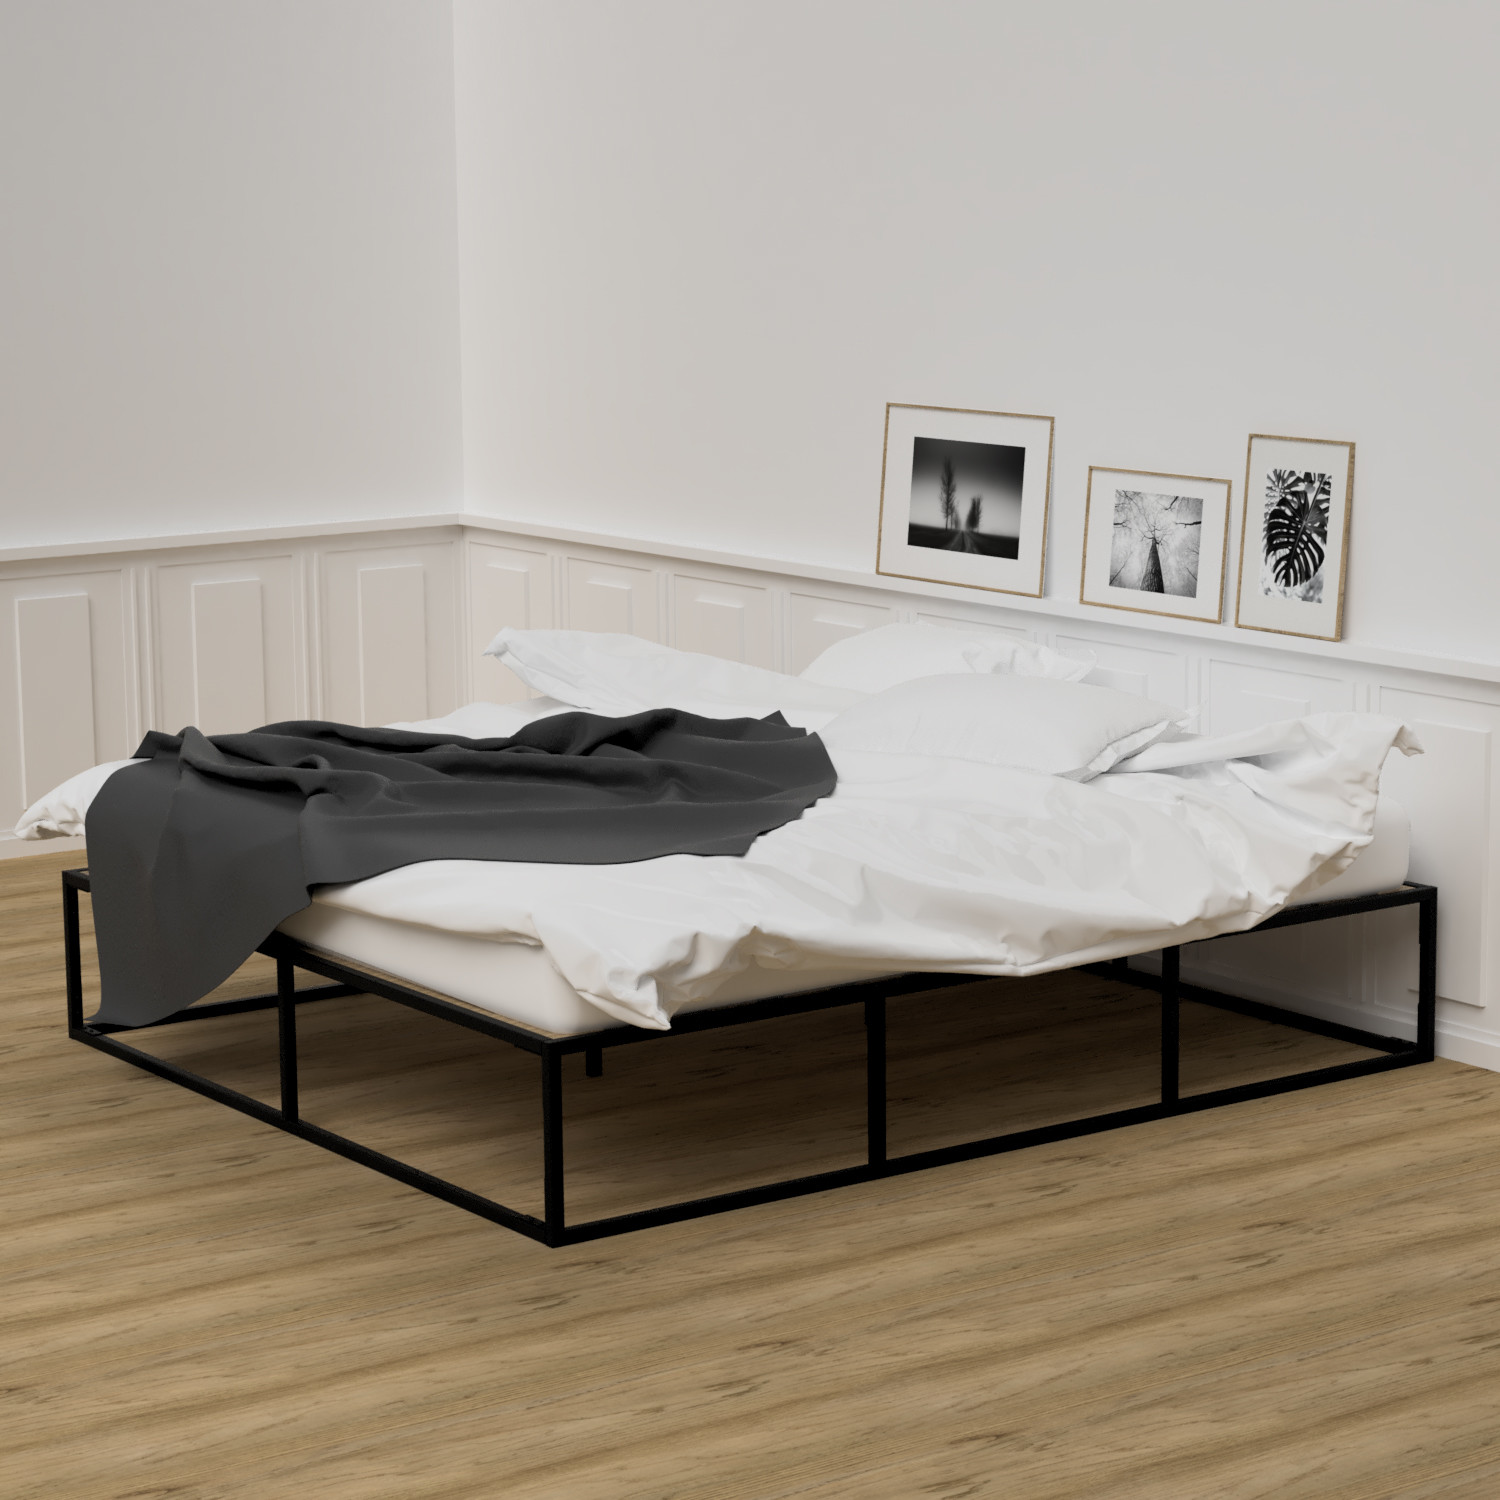 180cm Bed Bed Frame 180cm X 200cm Nichba Design Touch Of Modern